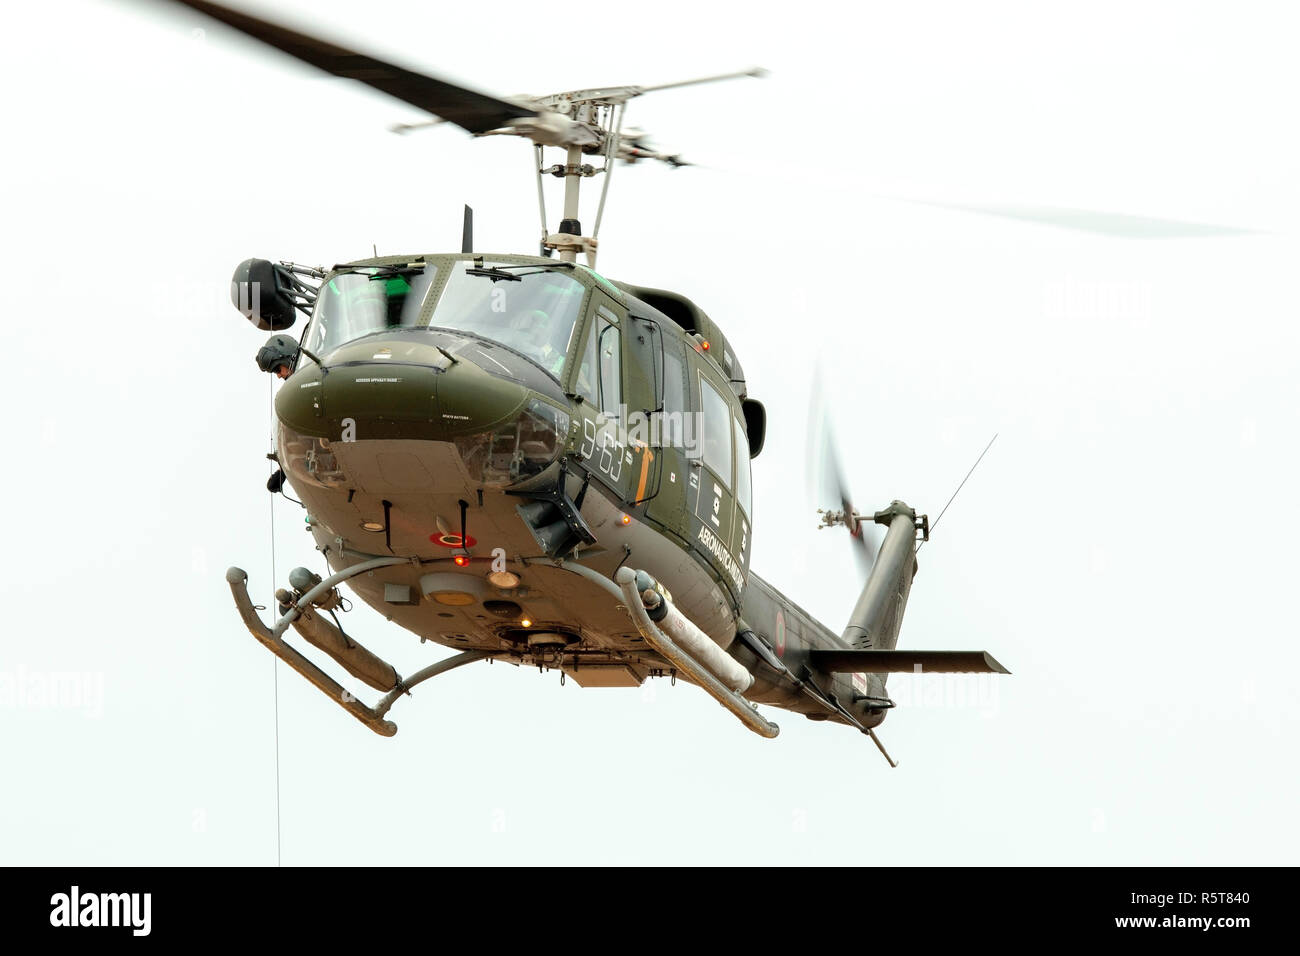 Italian Air Force Agusta AB-212AM based in Malta for a few years leaving the airfield after performing a rescue demonstration. Stock Photo